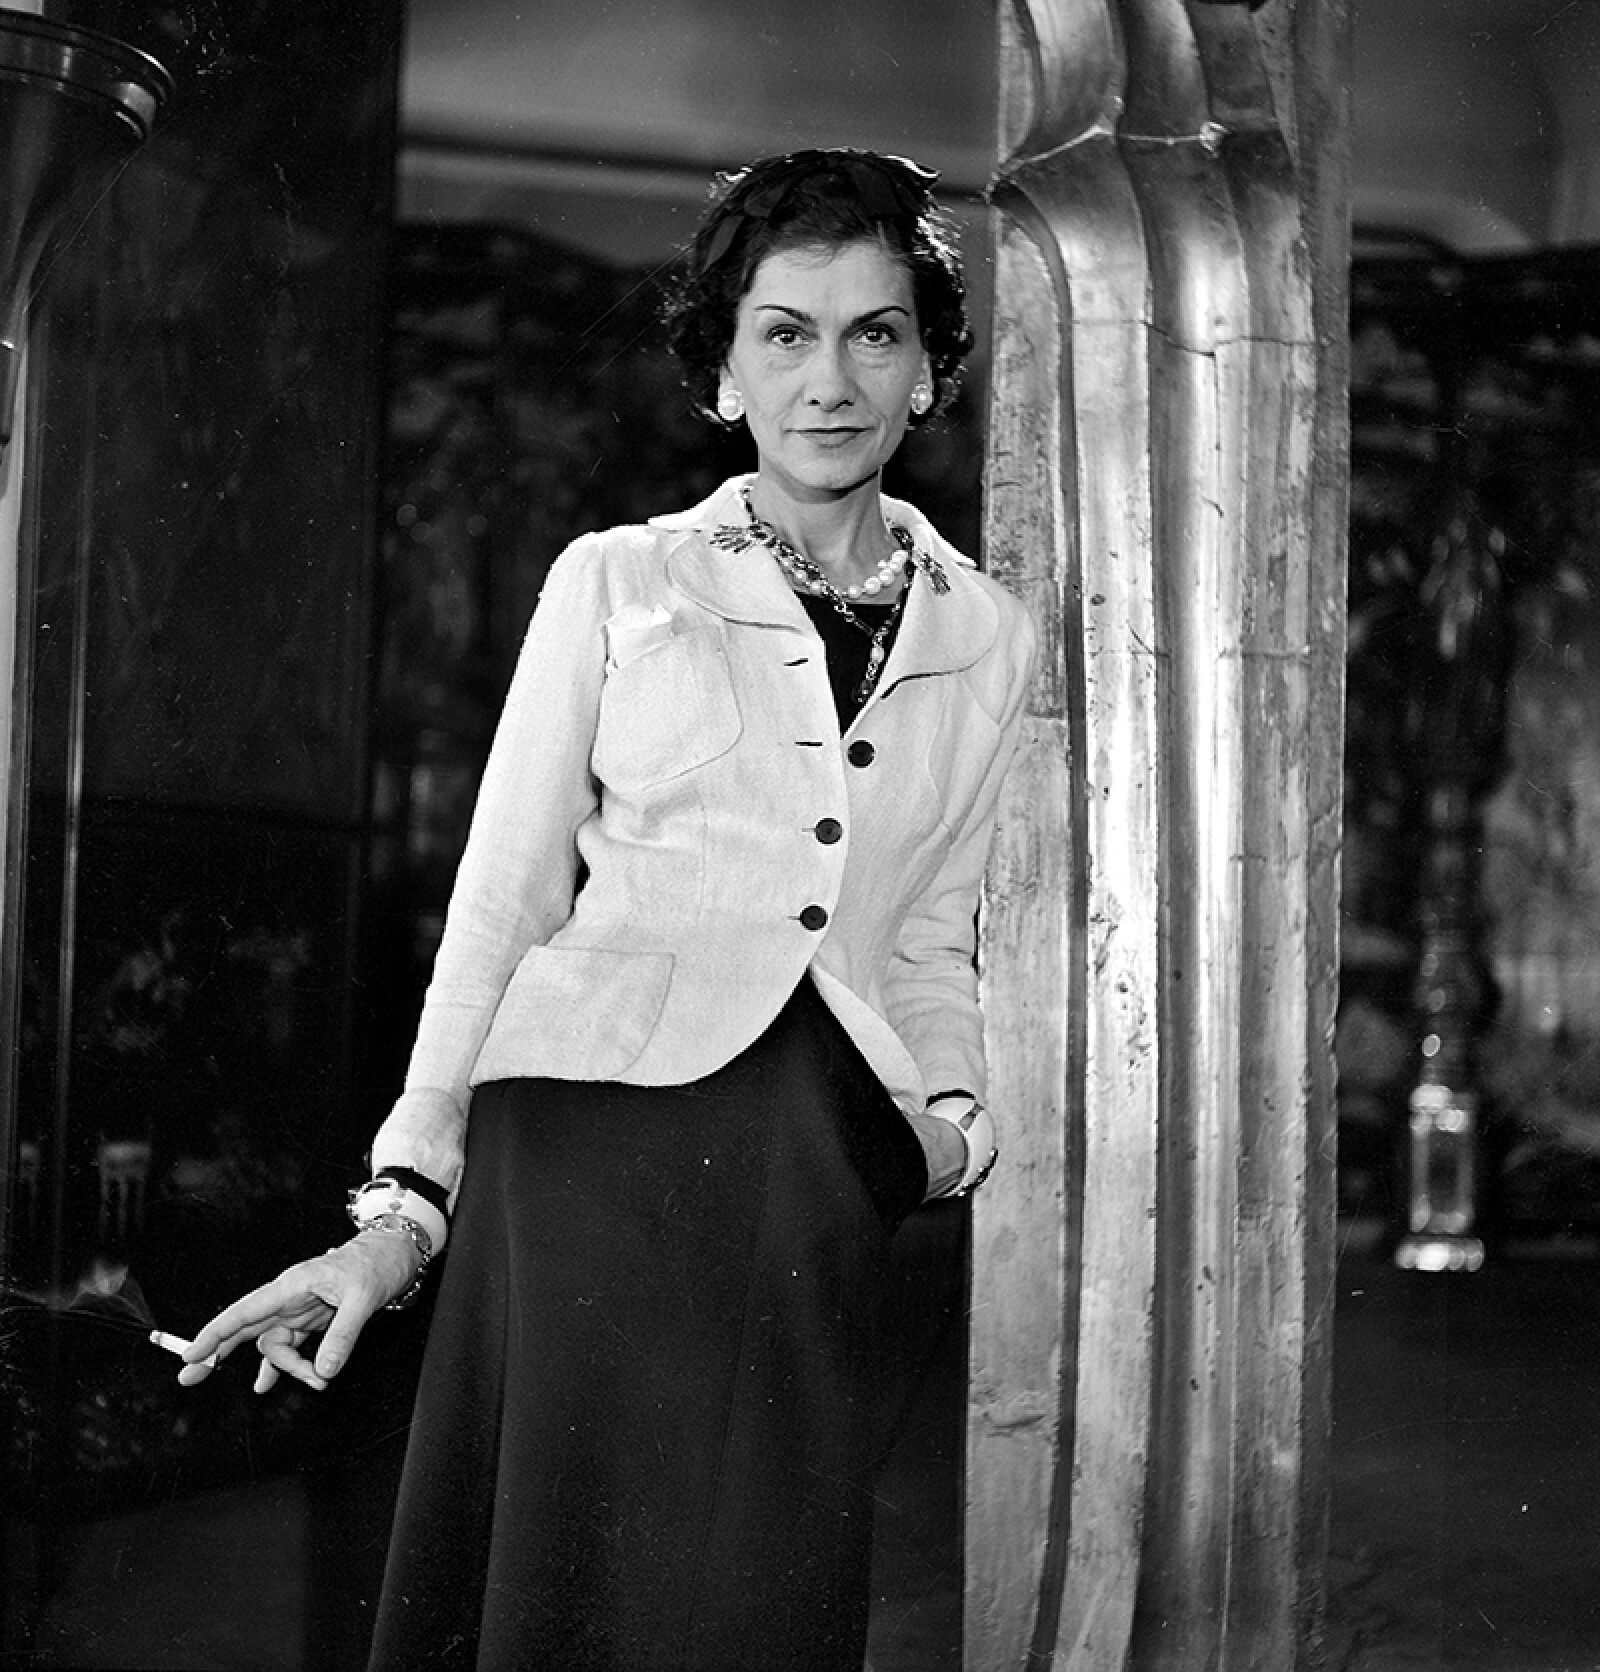 Coco Chanel, French couturier. Paris, 1937.